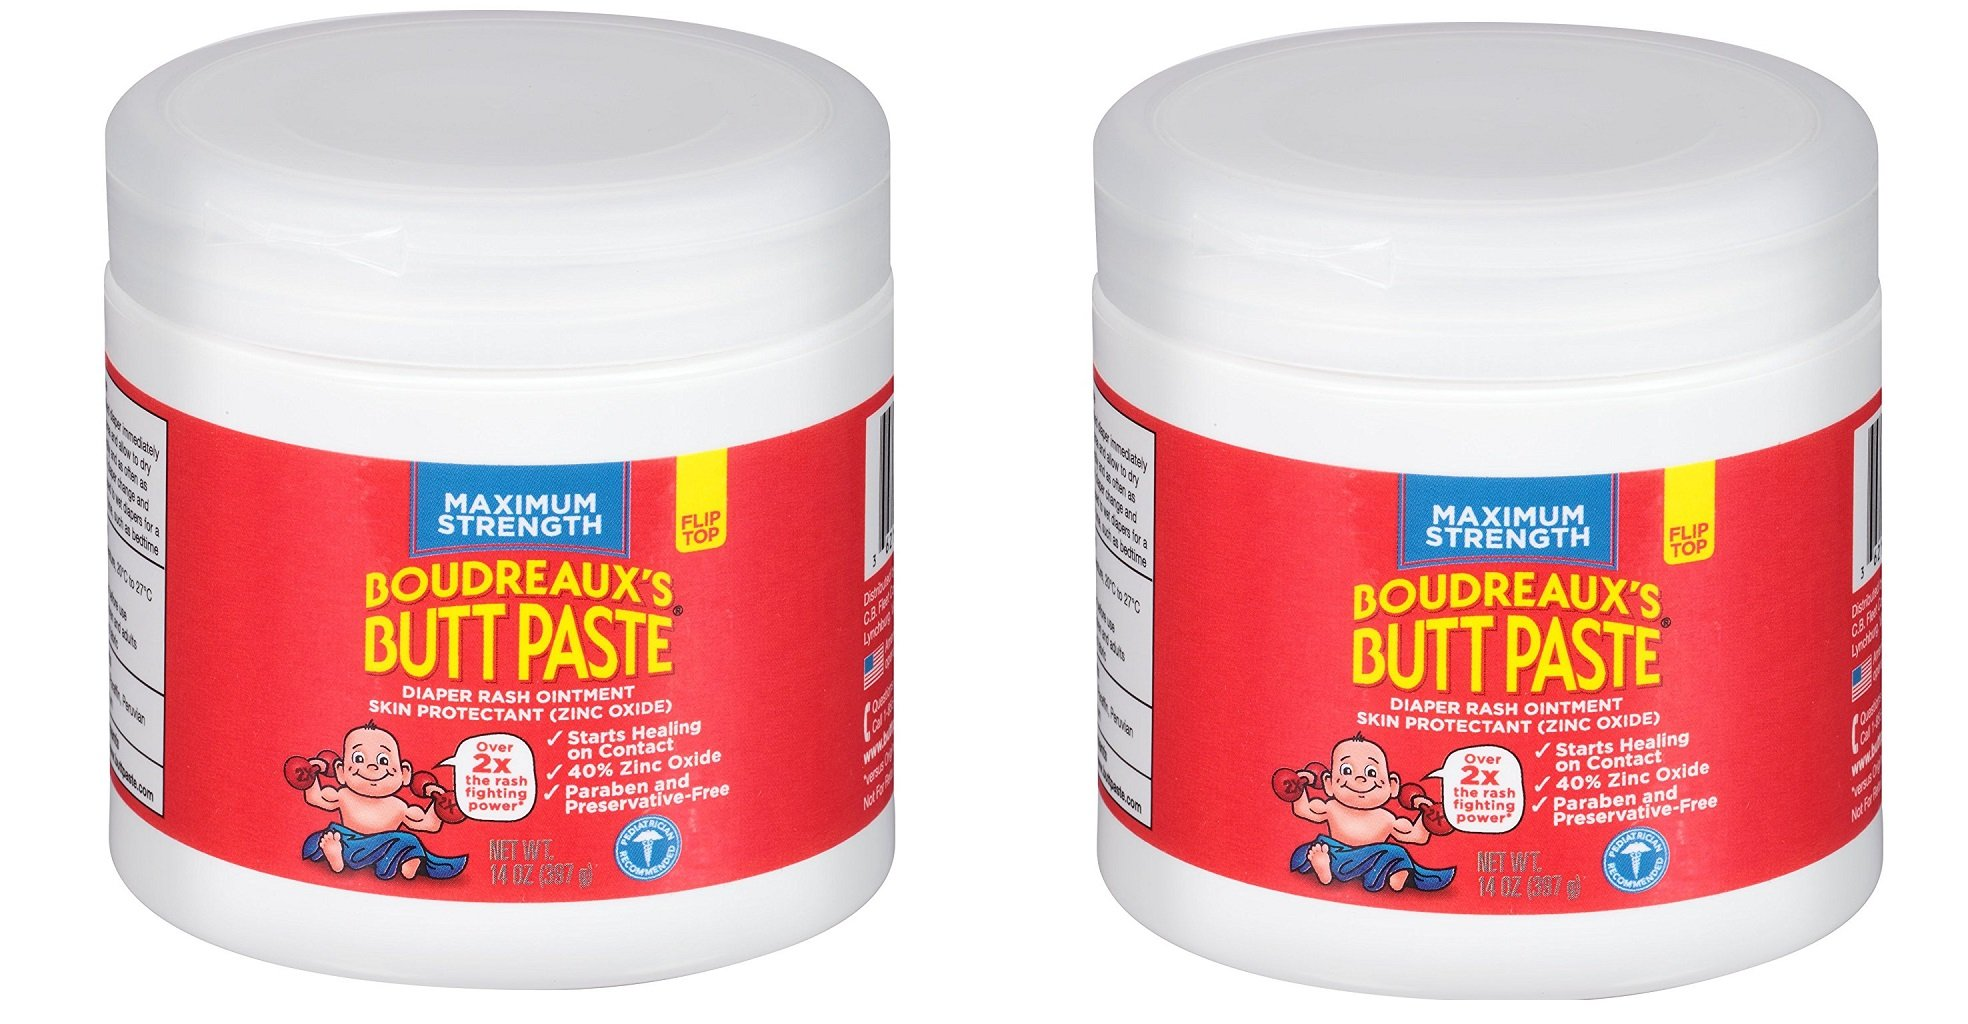 Boudreauxs Butt Paste Diaper Rash Ointment, hmNLJa, Maximum Strength - Contains 40% Zinc Oxide - Pediatrican Recommended - Paraben and Preservative-Free - 2Pack (14 Ounce) by BORDEAUX'S